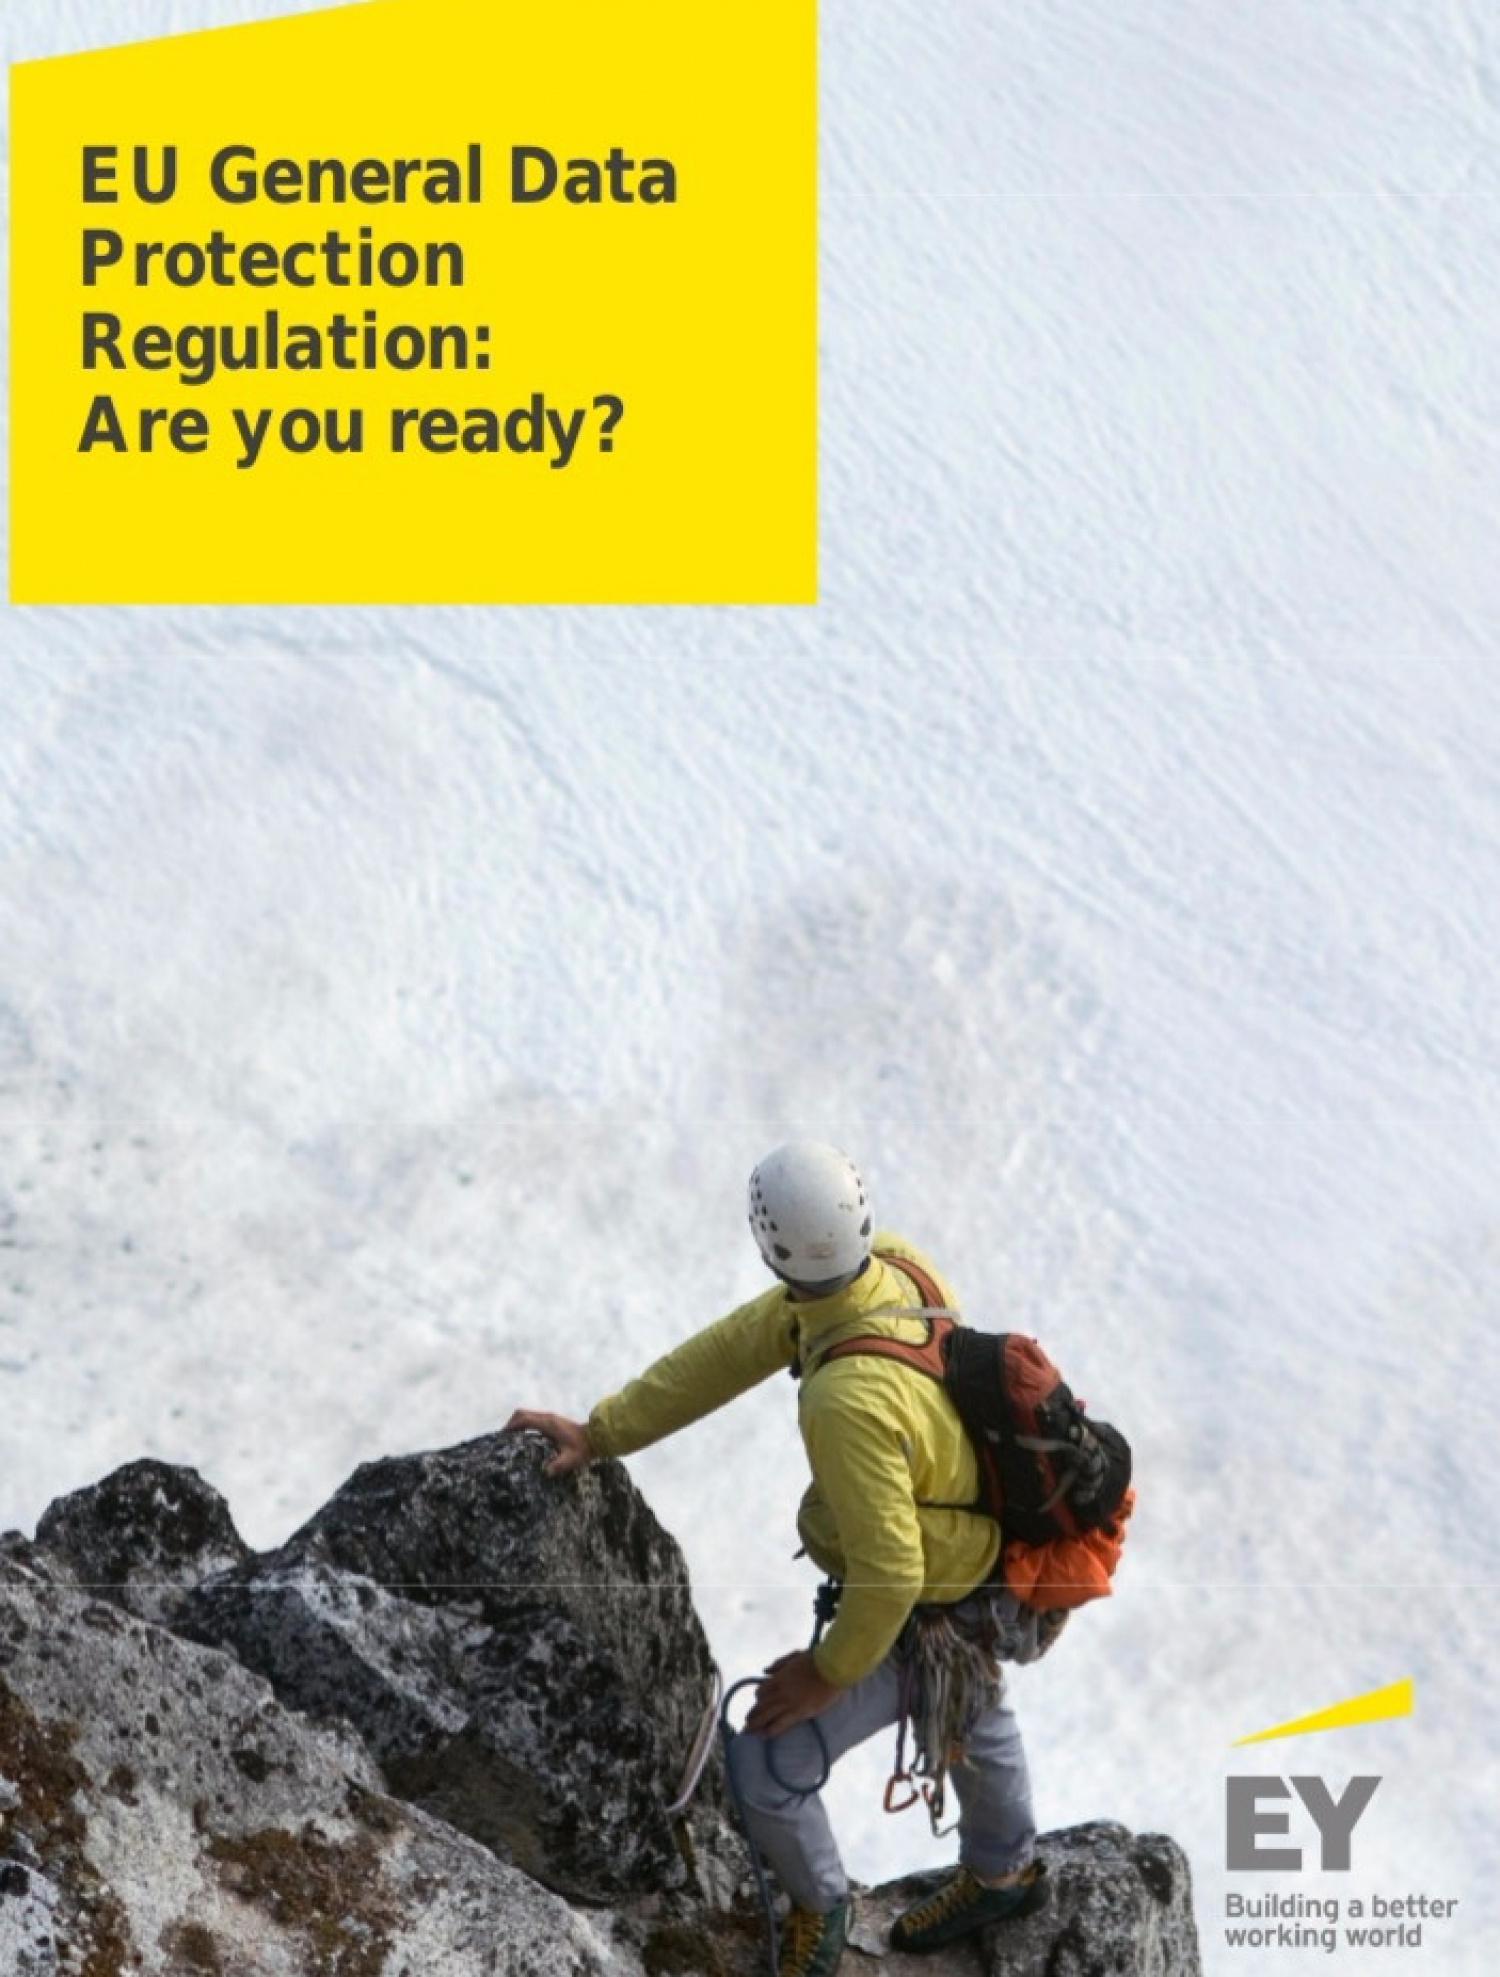 EY General Data Protection Regulation: Are you ready?